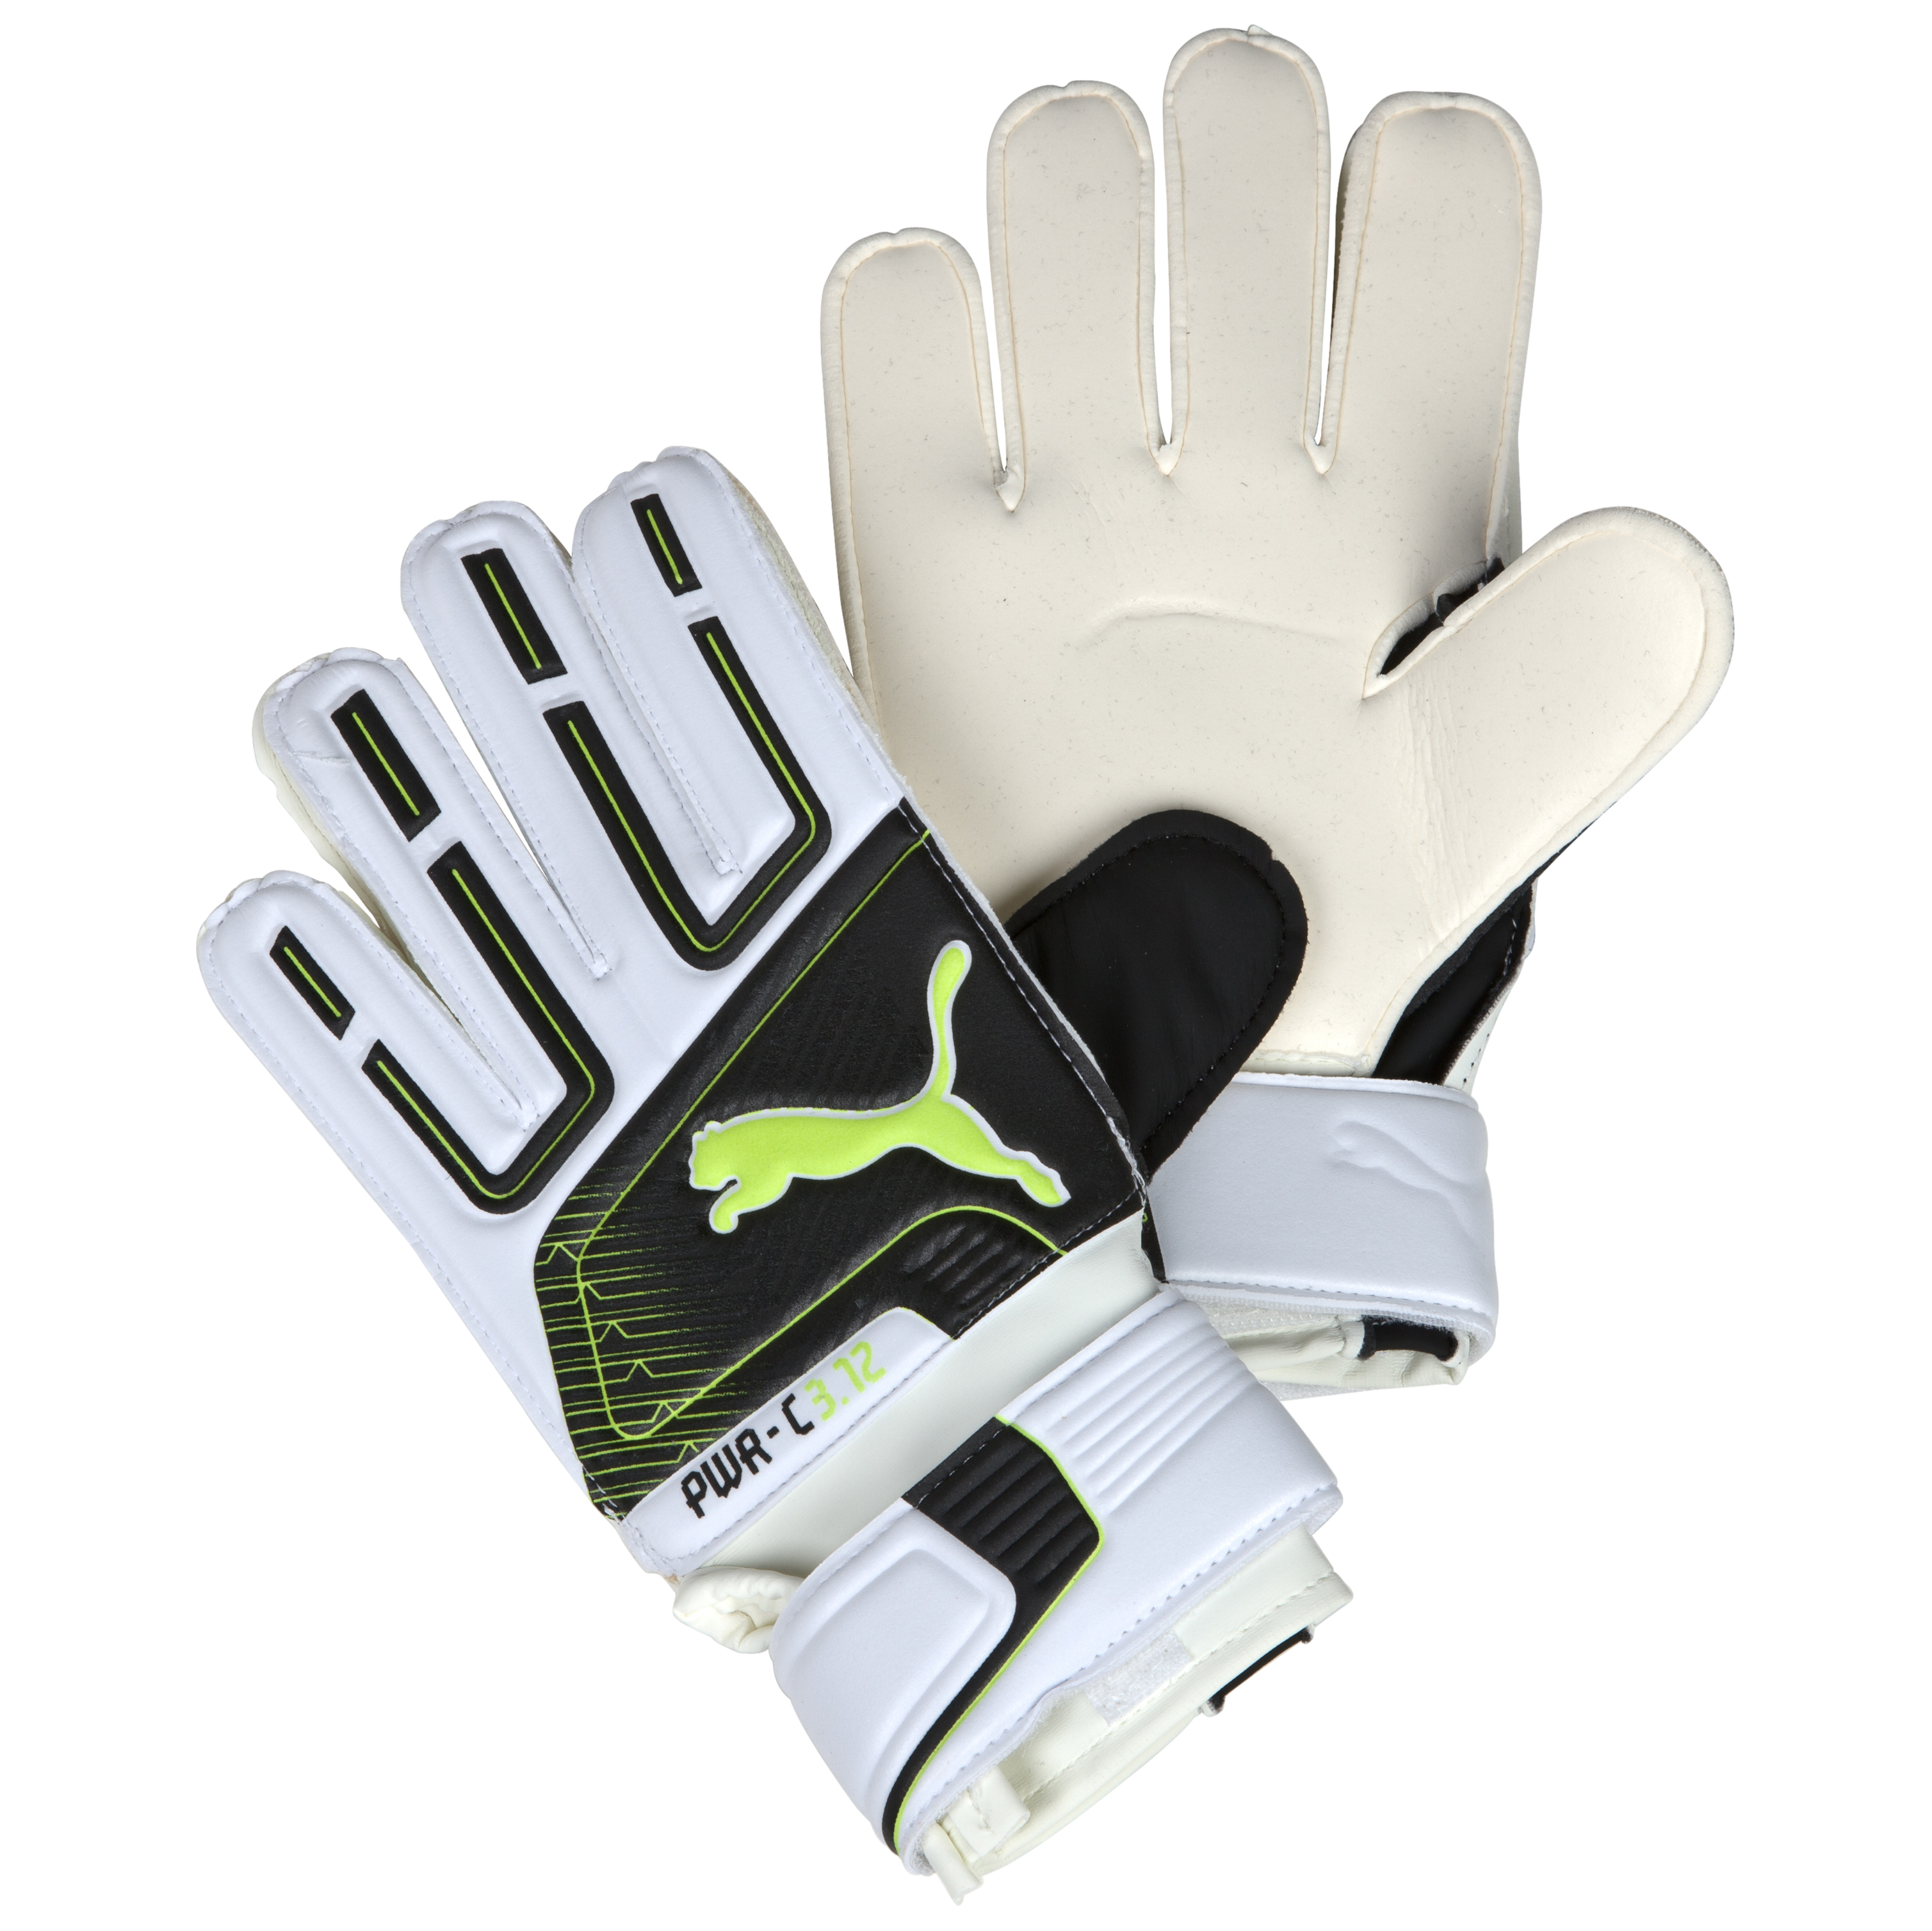 Puma PowerCat 3.12 Grip RC Junior Goalkeeper Gloves - White/Black/Lime Punch/Dark Shadow